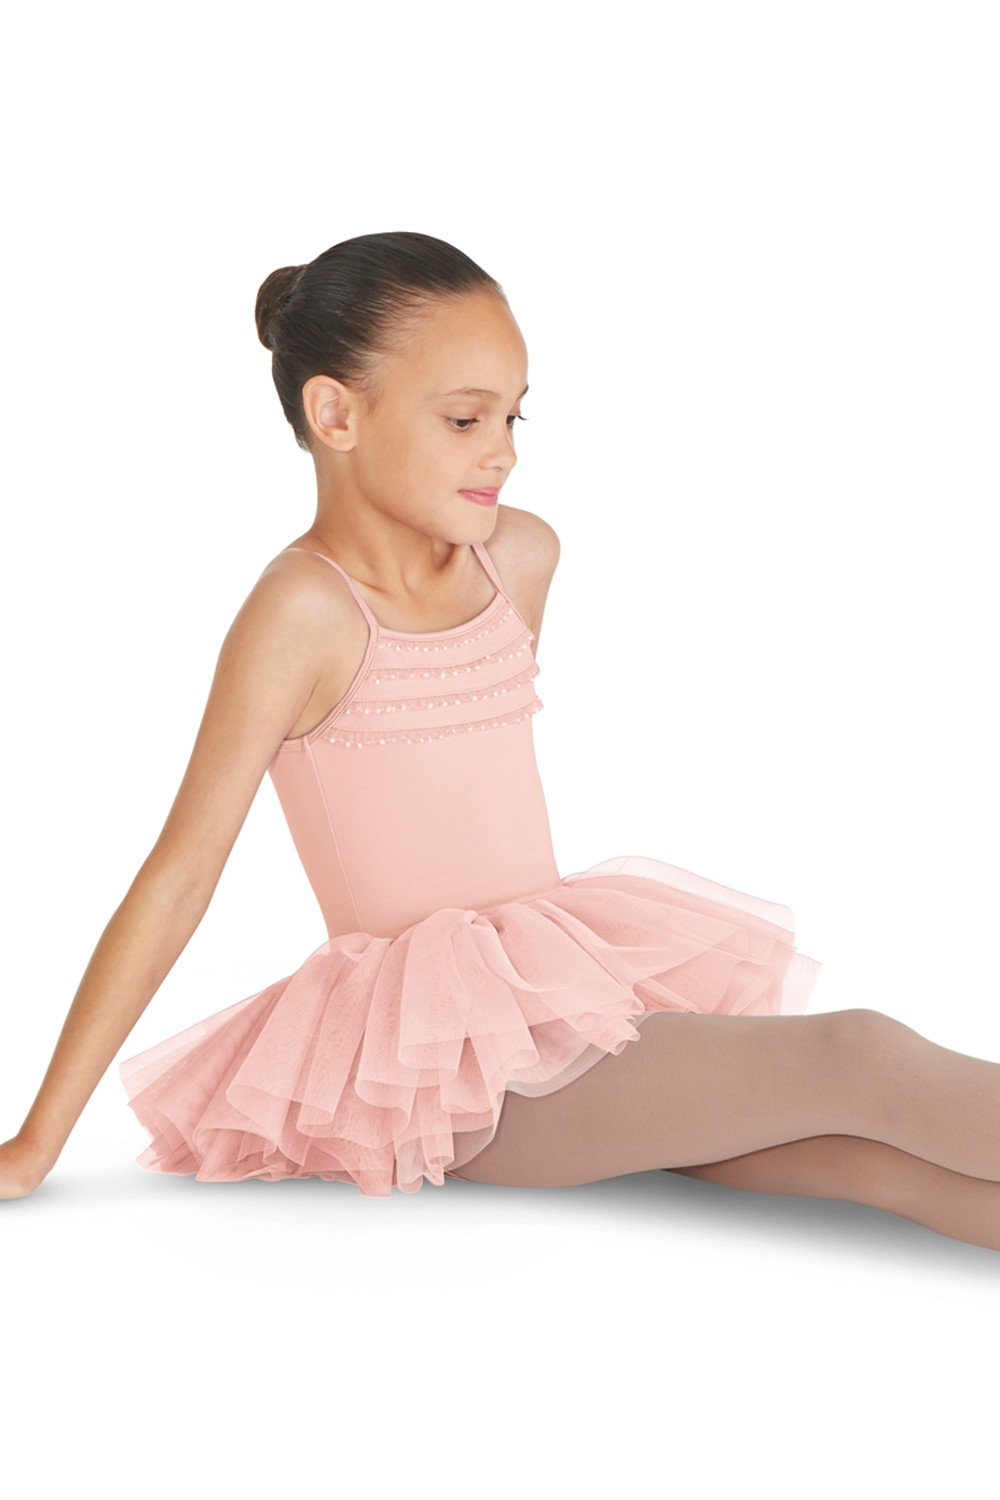 Frill Trim Tutu Leotard Children's Dance Leotards